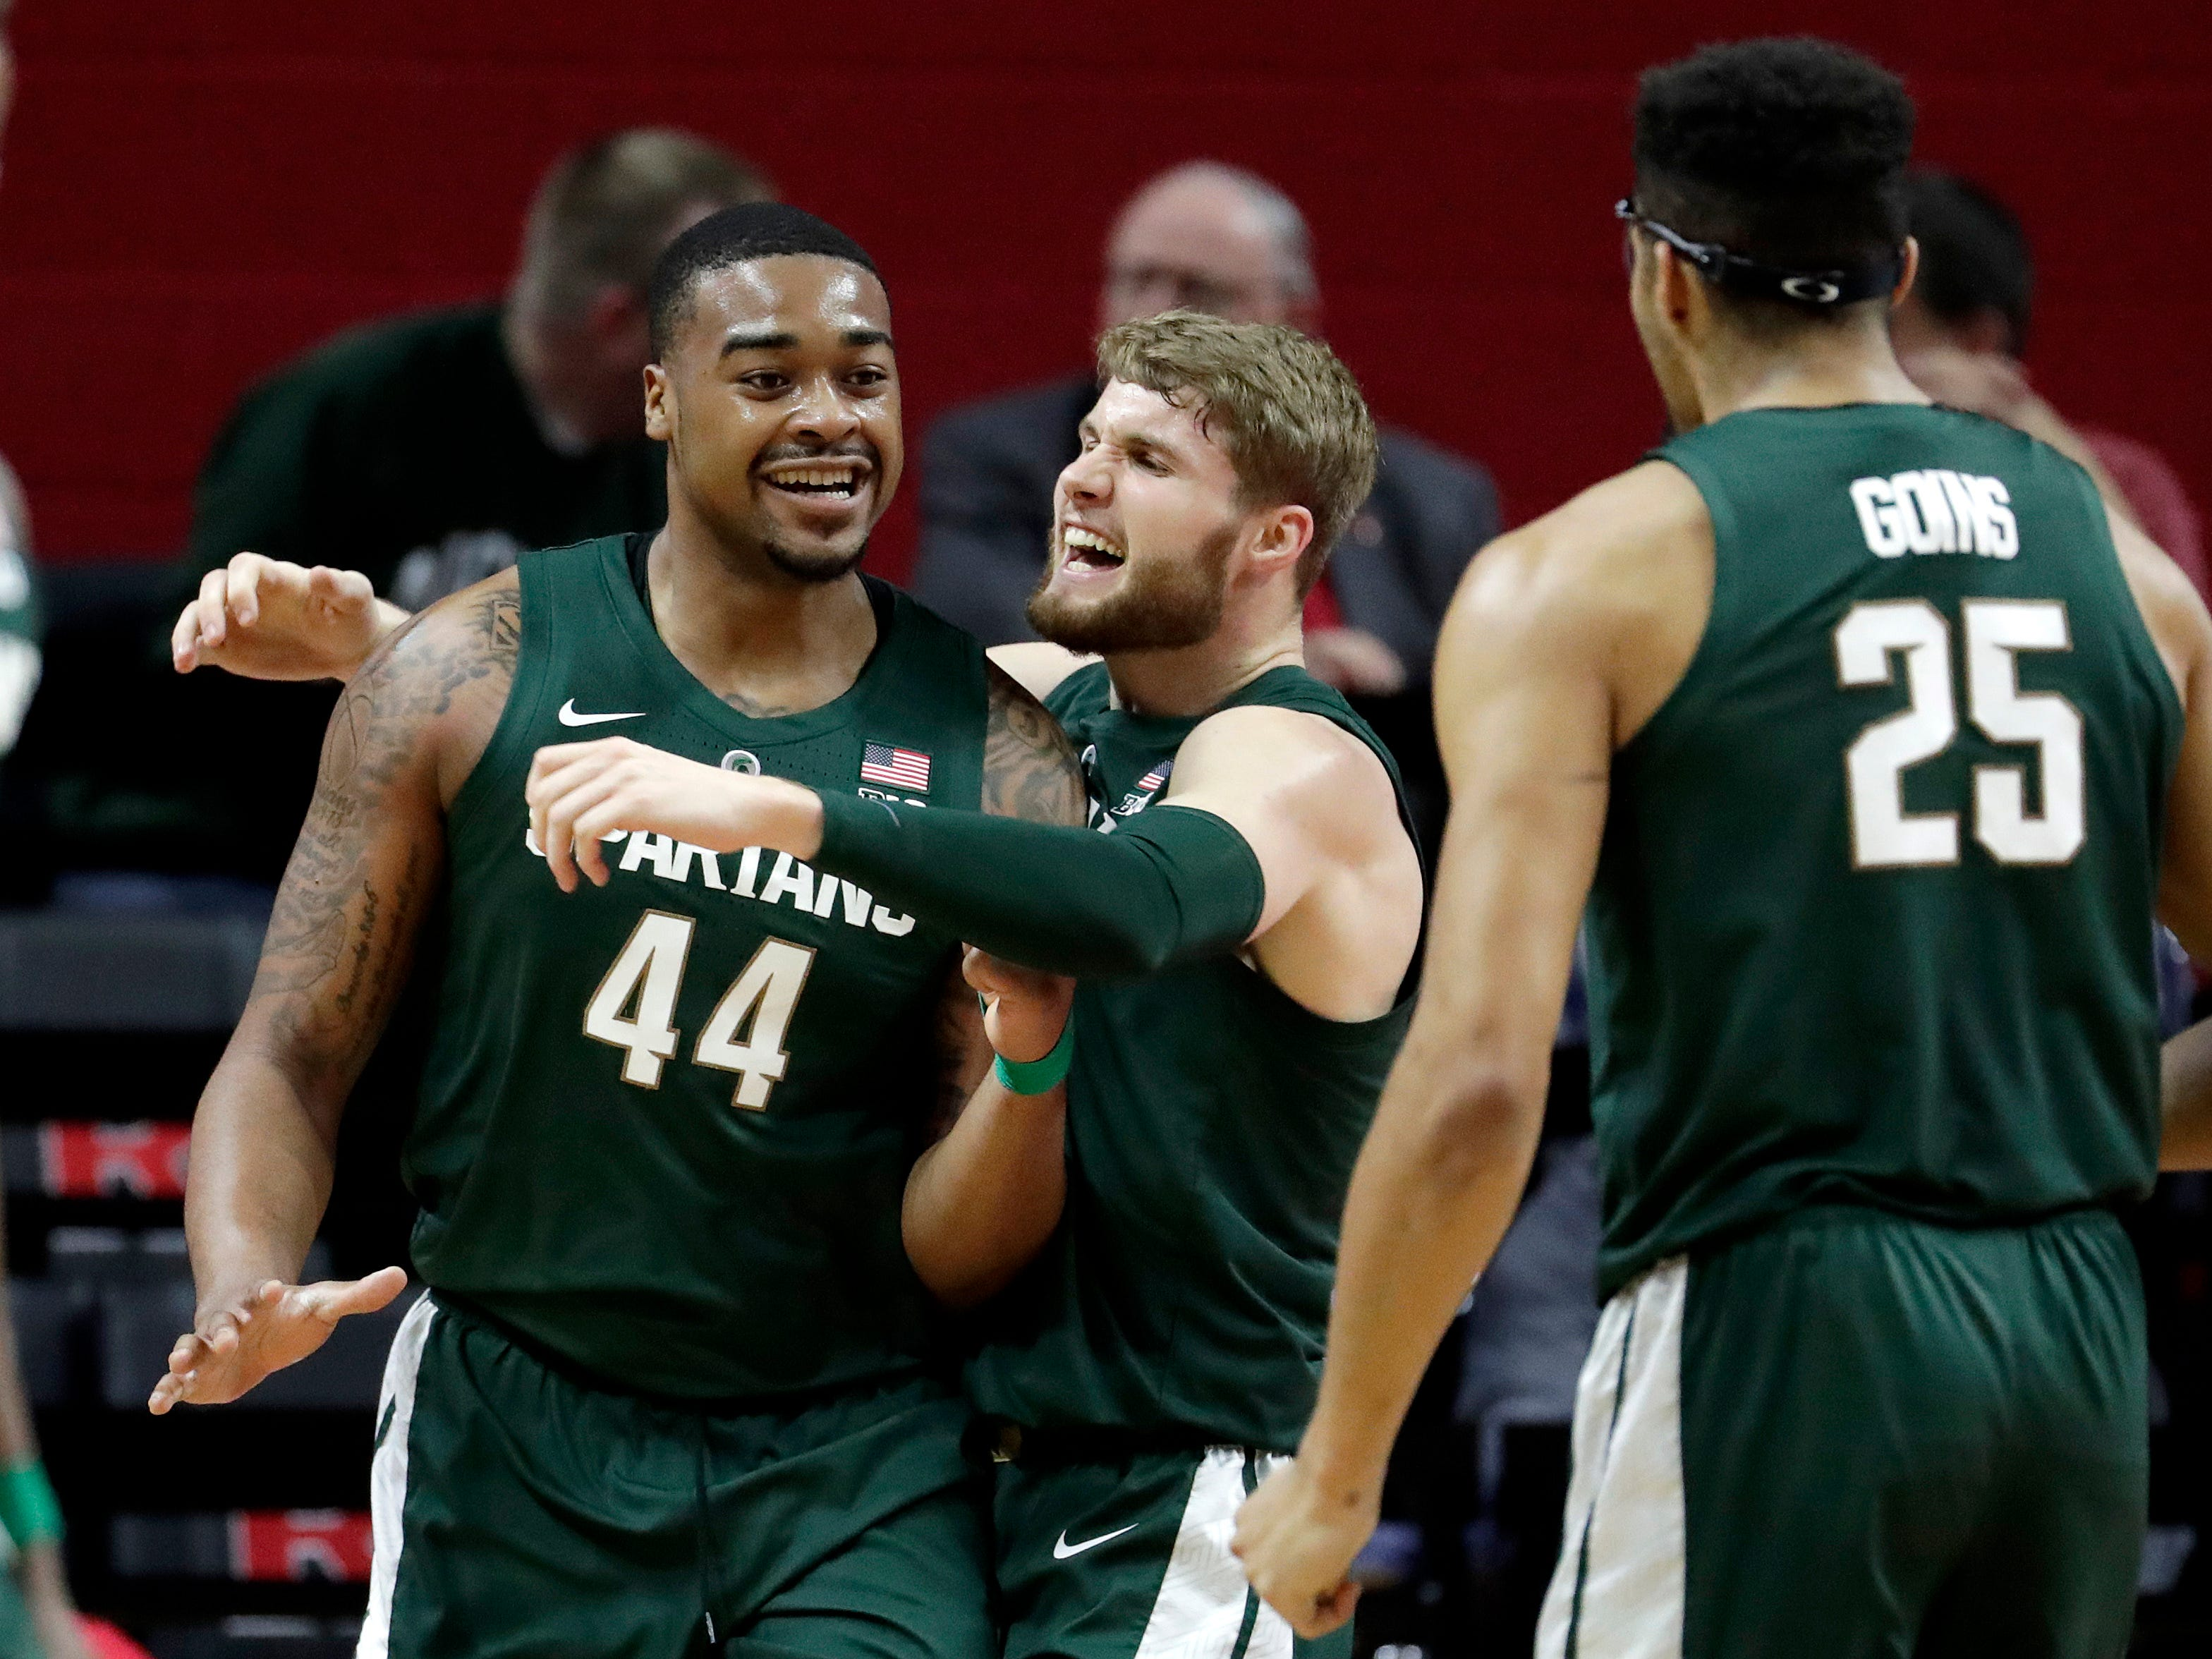 Michigan State forward Nick Ward (44) is hugged by Kyle Ahrens after scoring a basket against Rutgers during the first half of an NCAA college basketball game, Friday, Nov. 30, 2018, in Piscataway, N.J. (AP Photo/Julio Cortez)